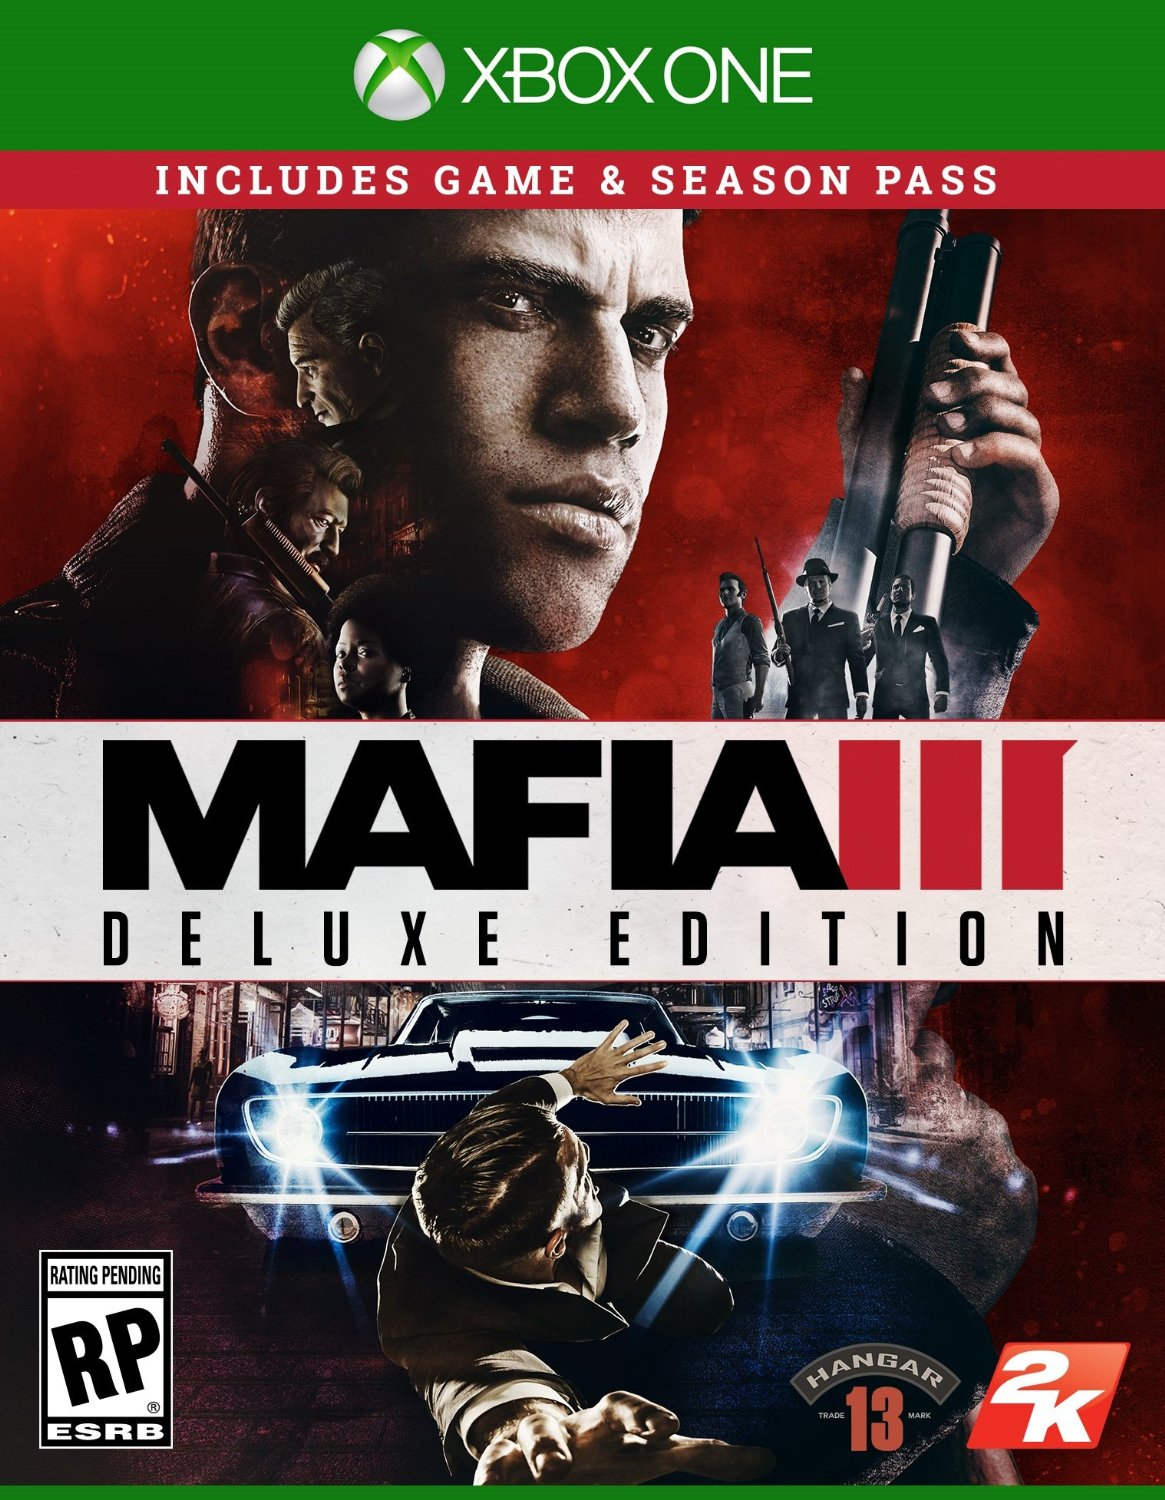 Mafia 3 - deluxe (Xbox One version)